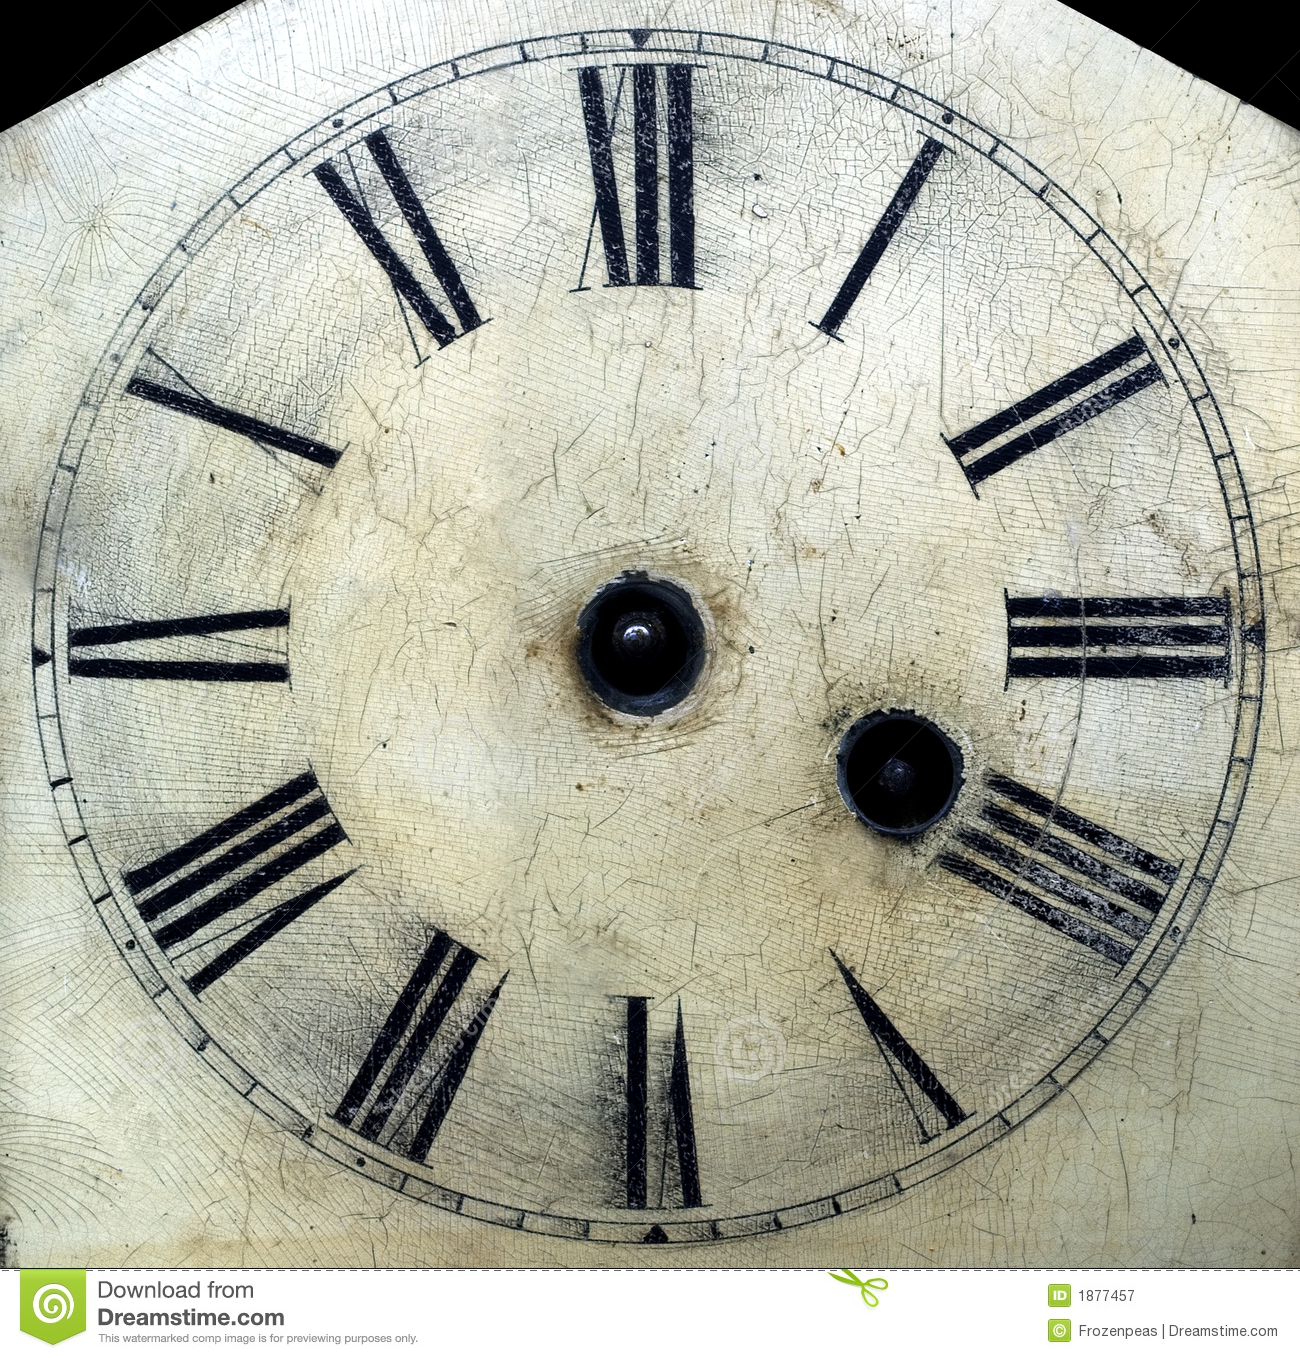 Old antique clock face with hands removed close-up detail.